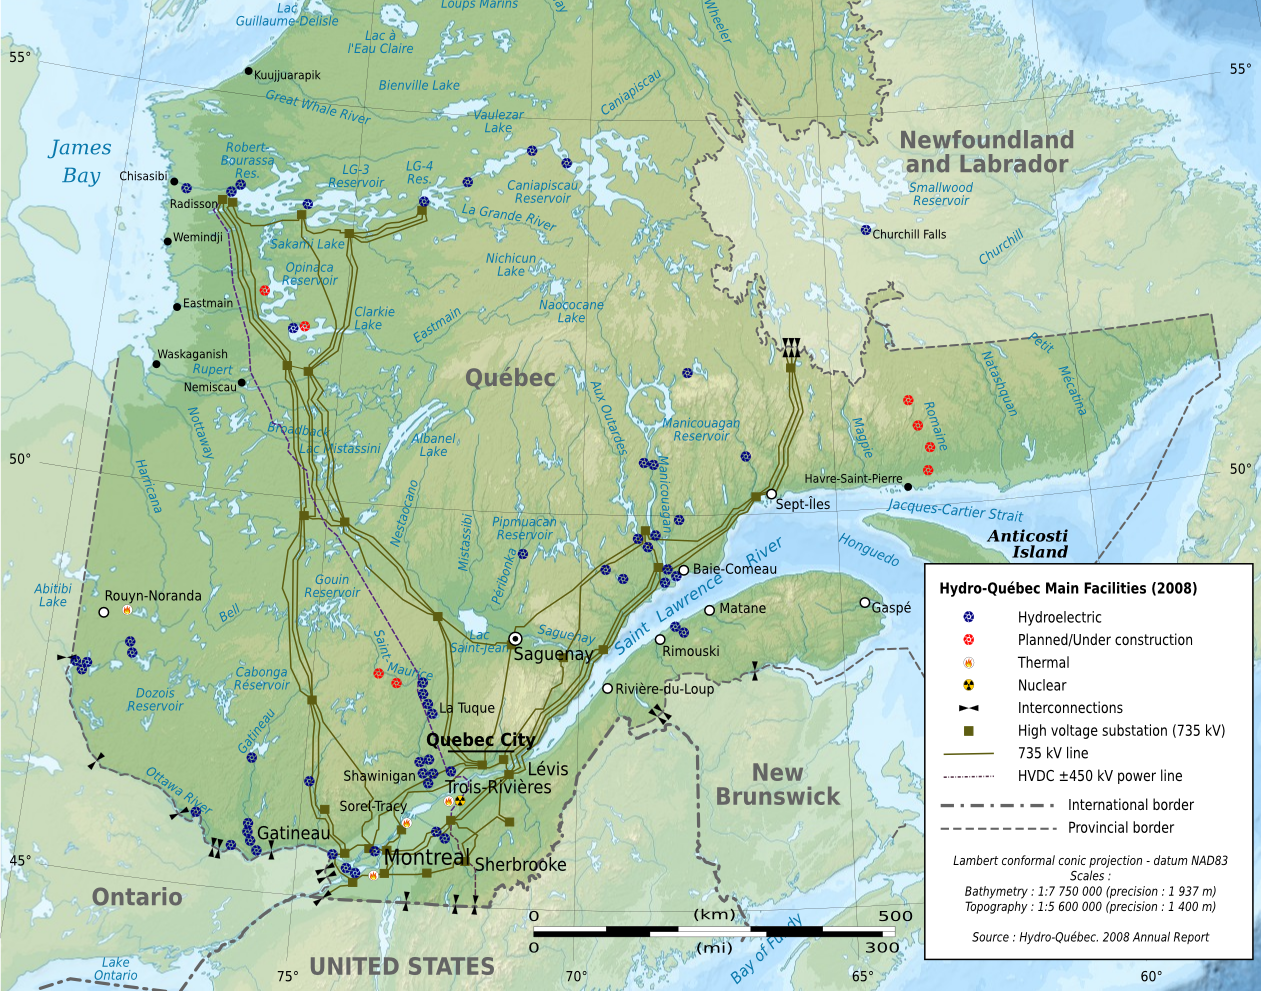 filequebec map with hydroquébec infrastructuresenpng. filequebec map with hydroquébec infrastructuresenpng